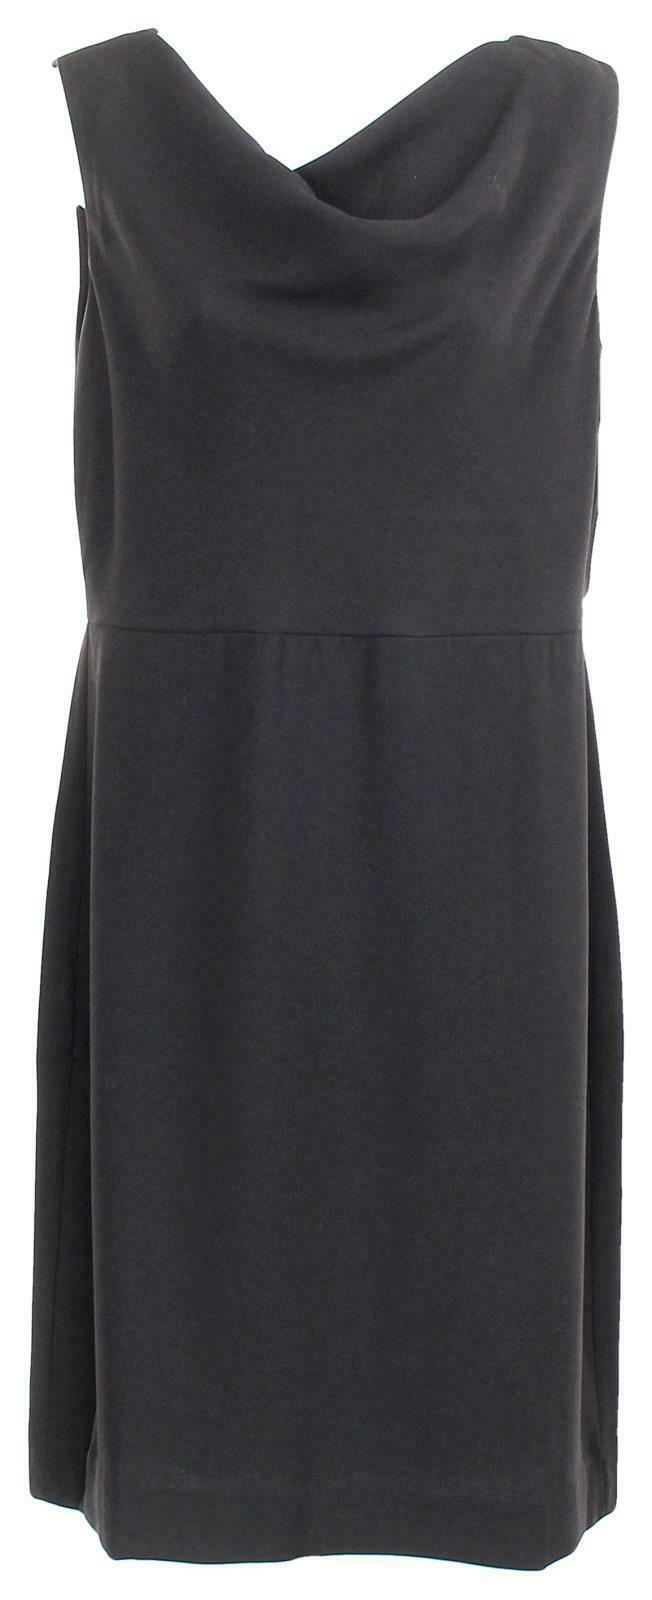 Primary image for J Crew Women's Cowl Neck Sheath Dress Everyday Crepe 365 Work 10 K2869 Black